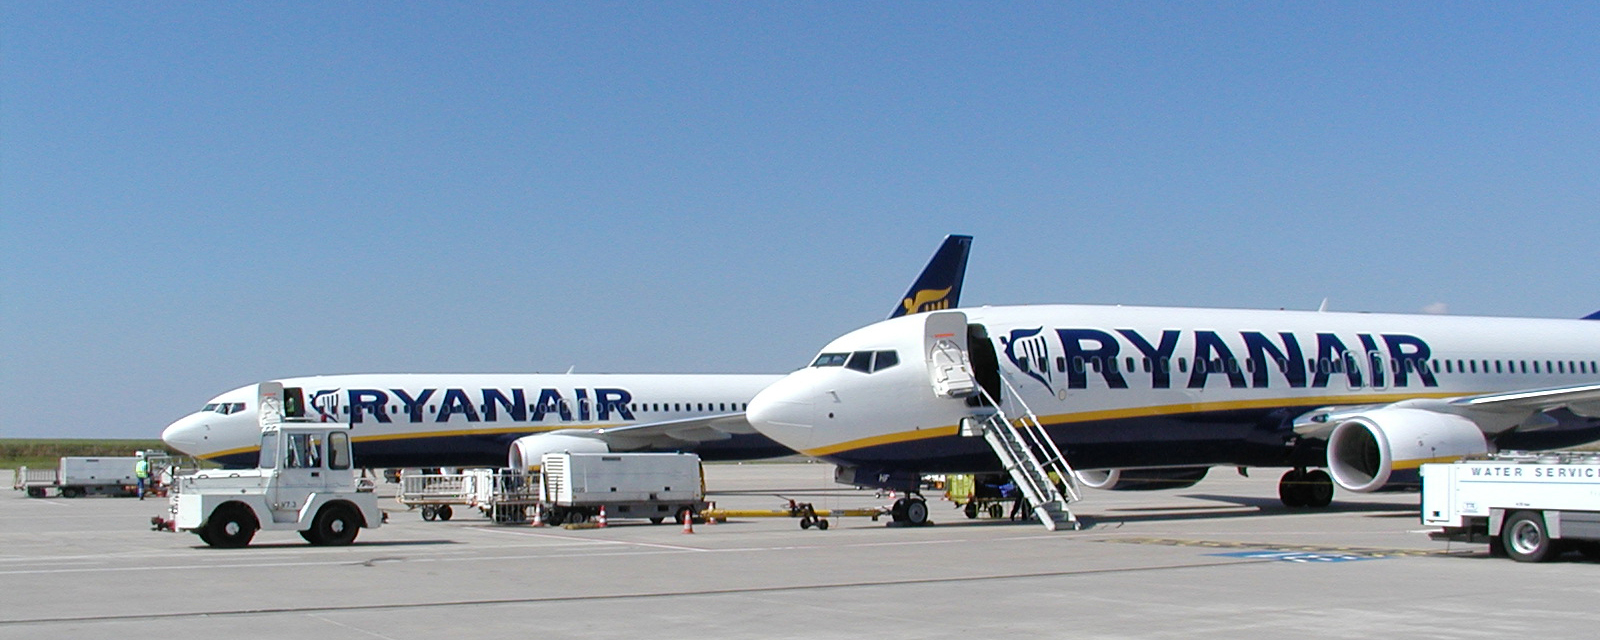 Ryanair cancels flights after pilot holidays confusion